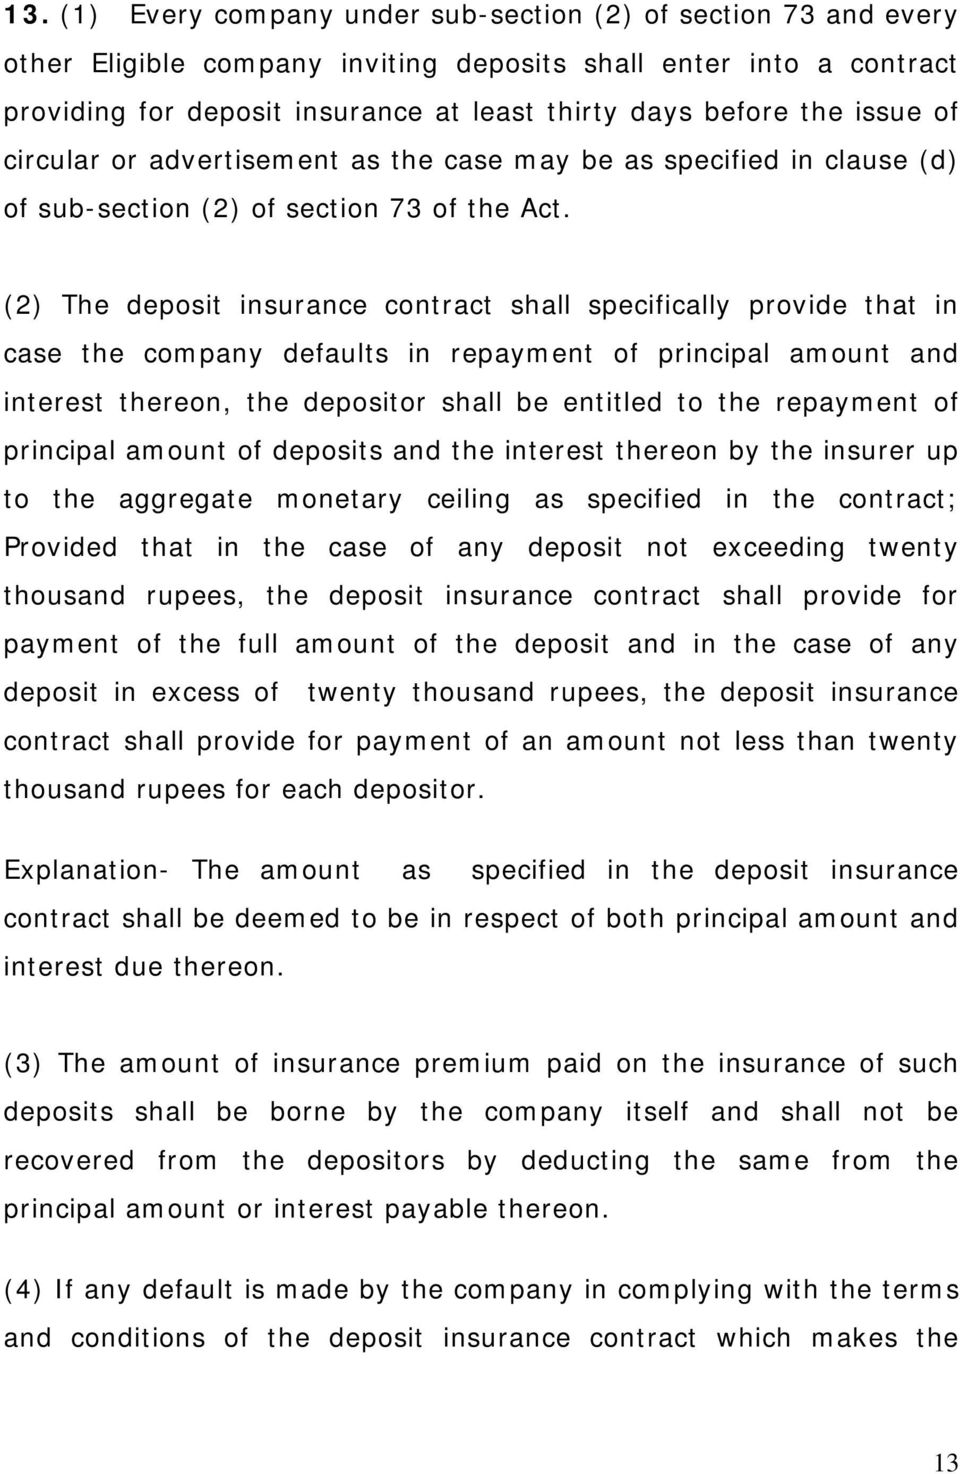 (2) The deposit insurance contract shall specifically provide that in case the company defaults in repayment of principal amount and interest thereon, the depositor shall be entitled to the repayment